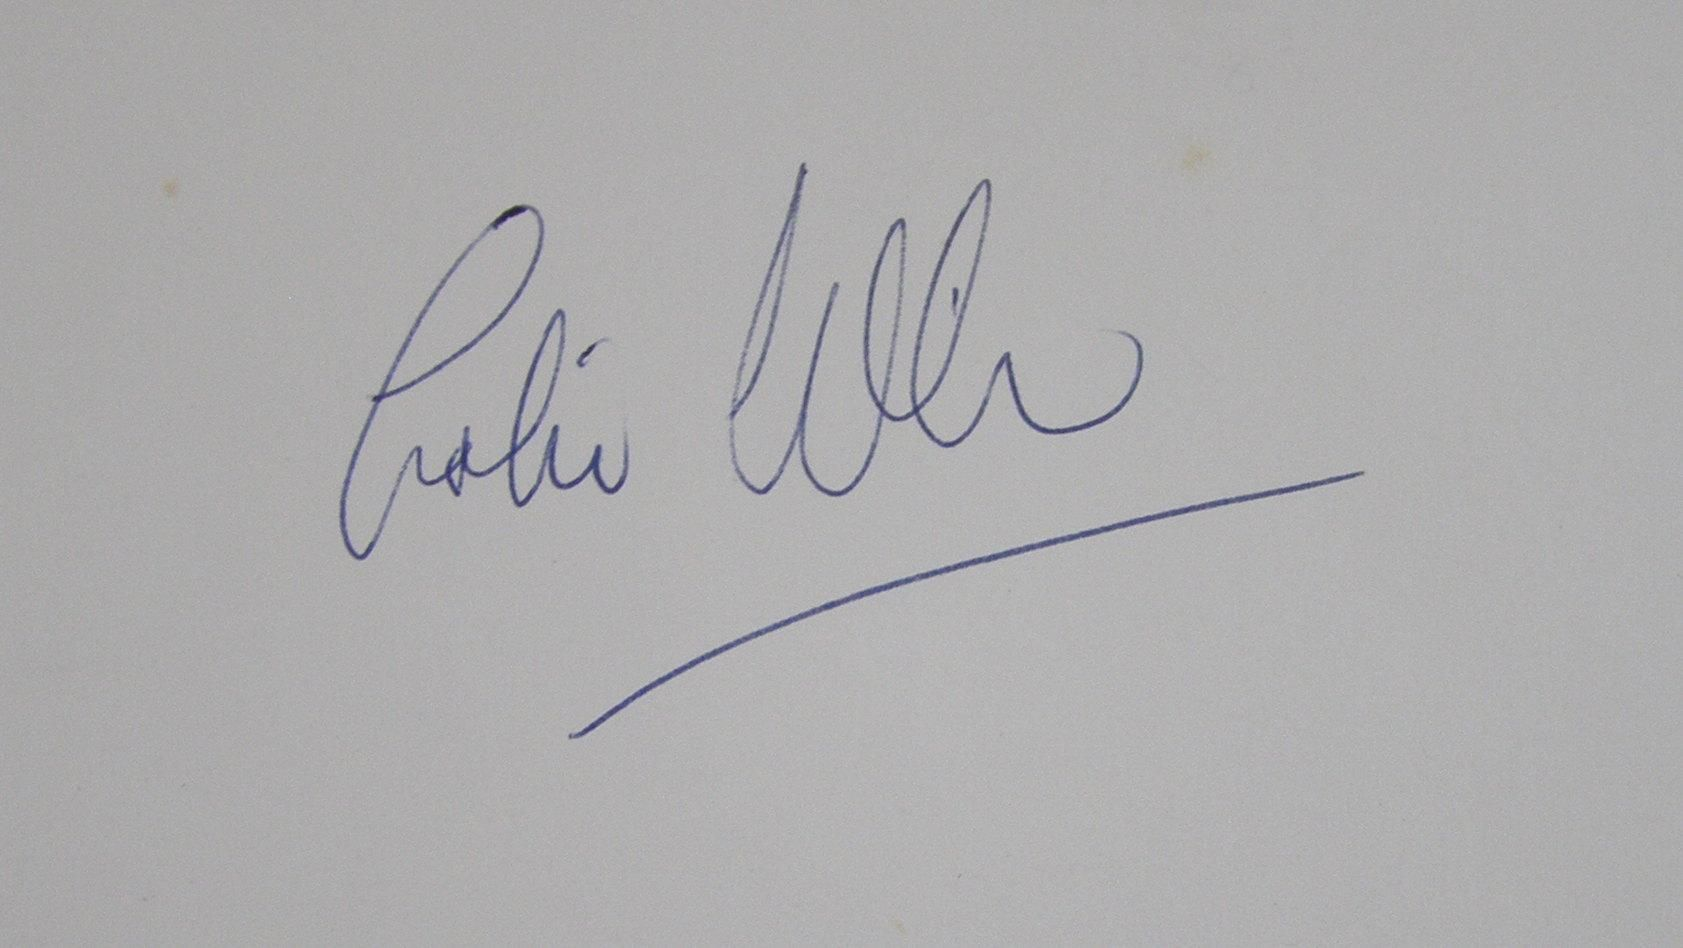 Colin wilson signed book for reference purposes if